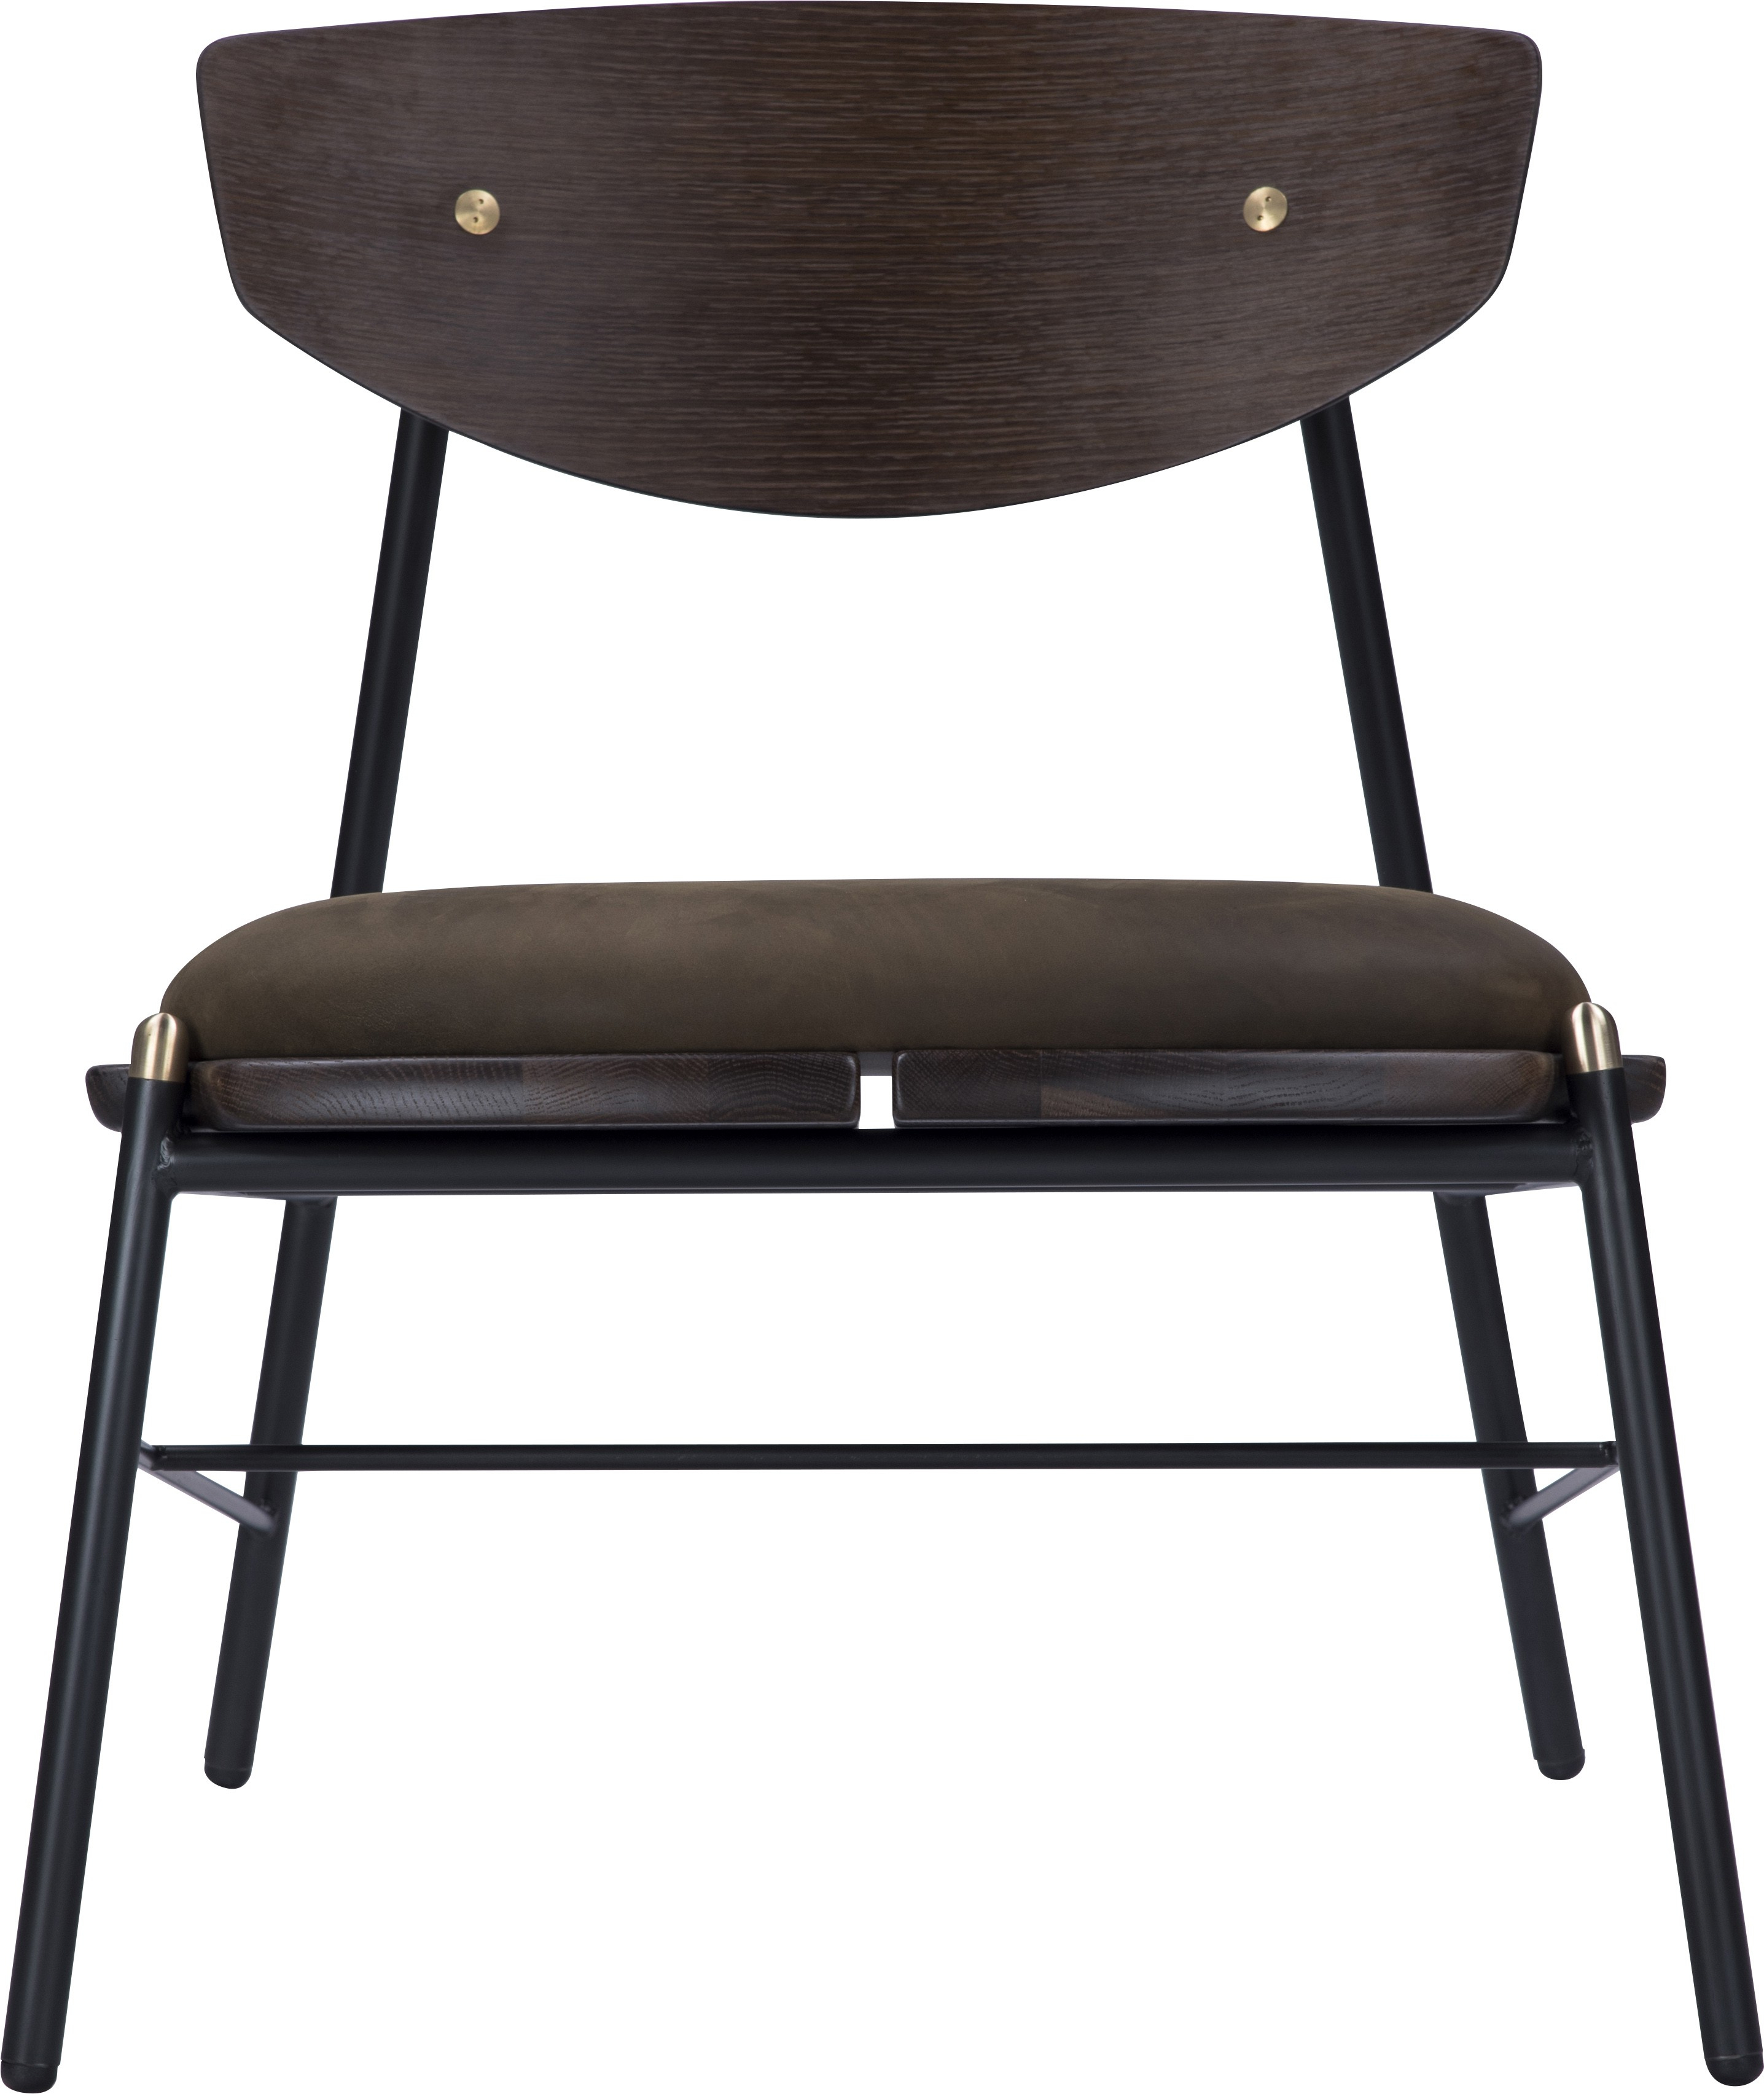 Kink Lounge Chair Jin Leather Within Mix Leather Imprint Metal Frame Console Tables (View 5 of 20)